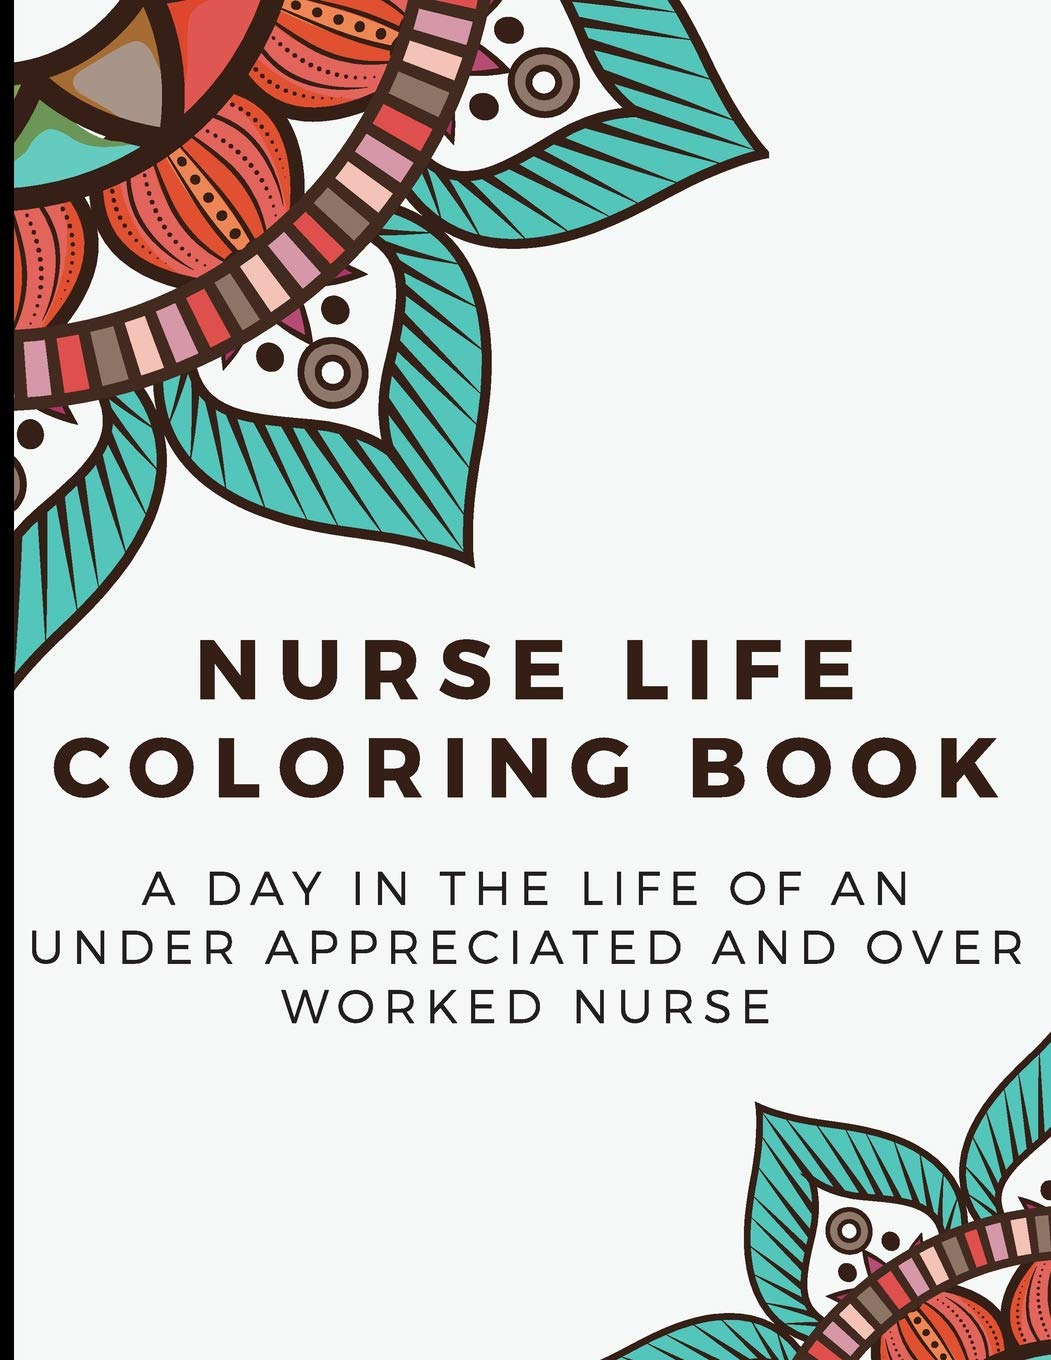 Nurse life coloring book a day in the life of an under appreciated